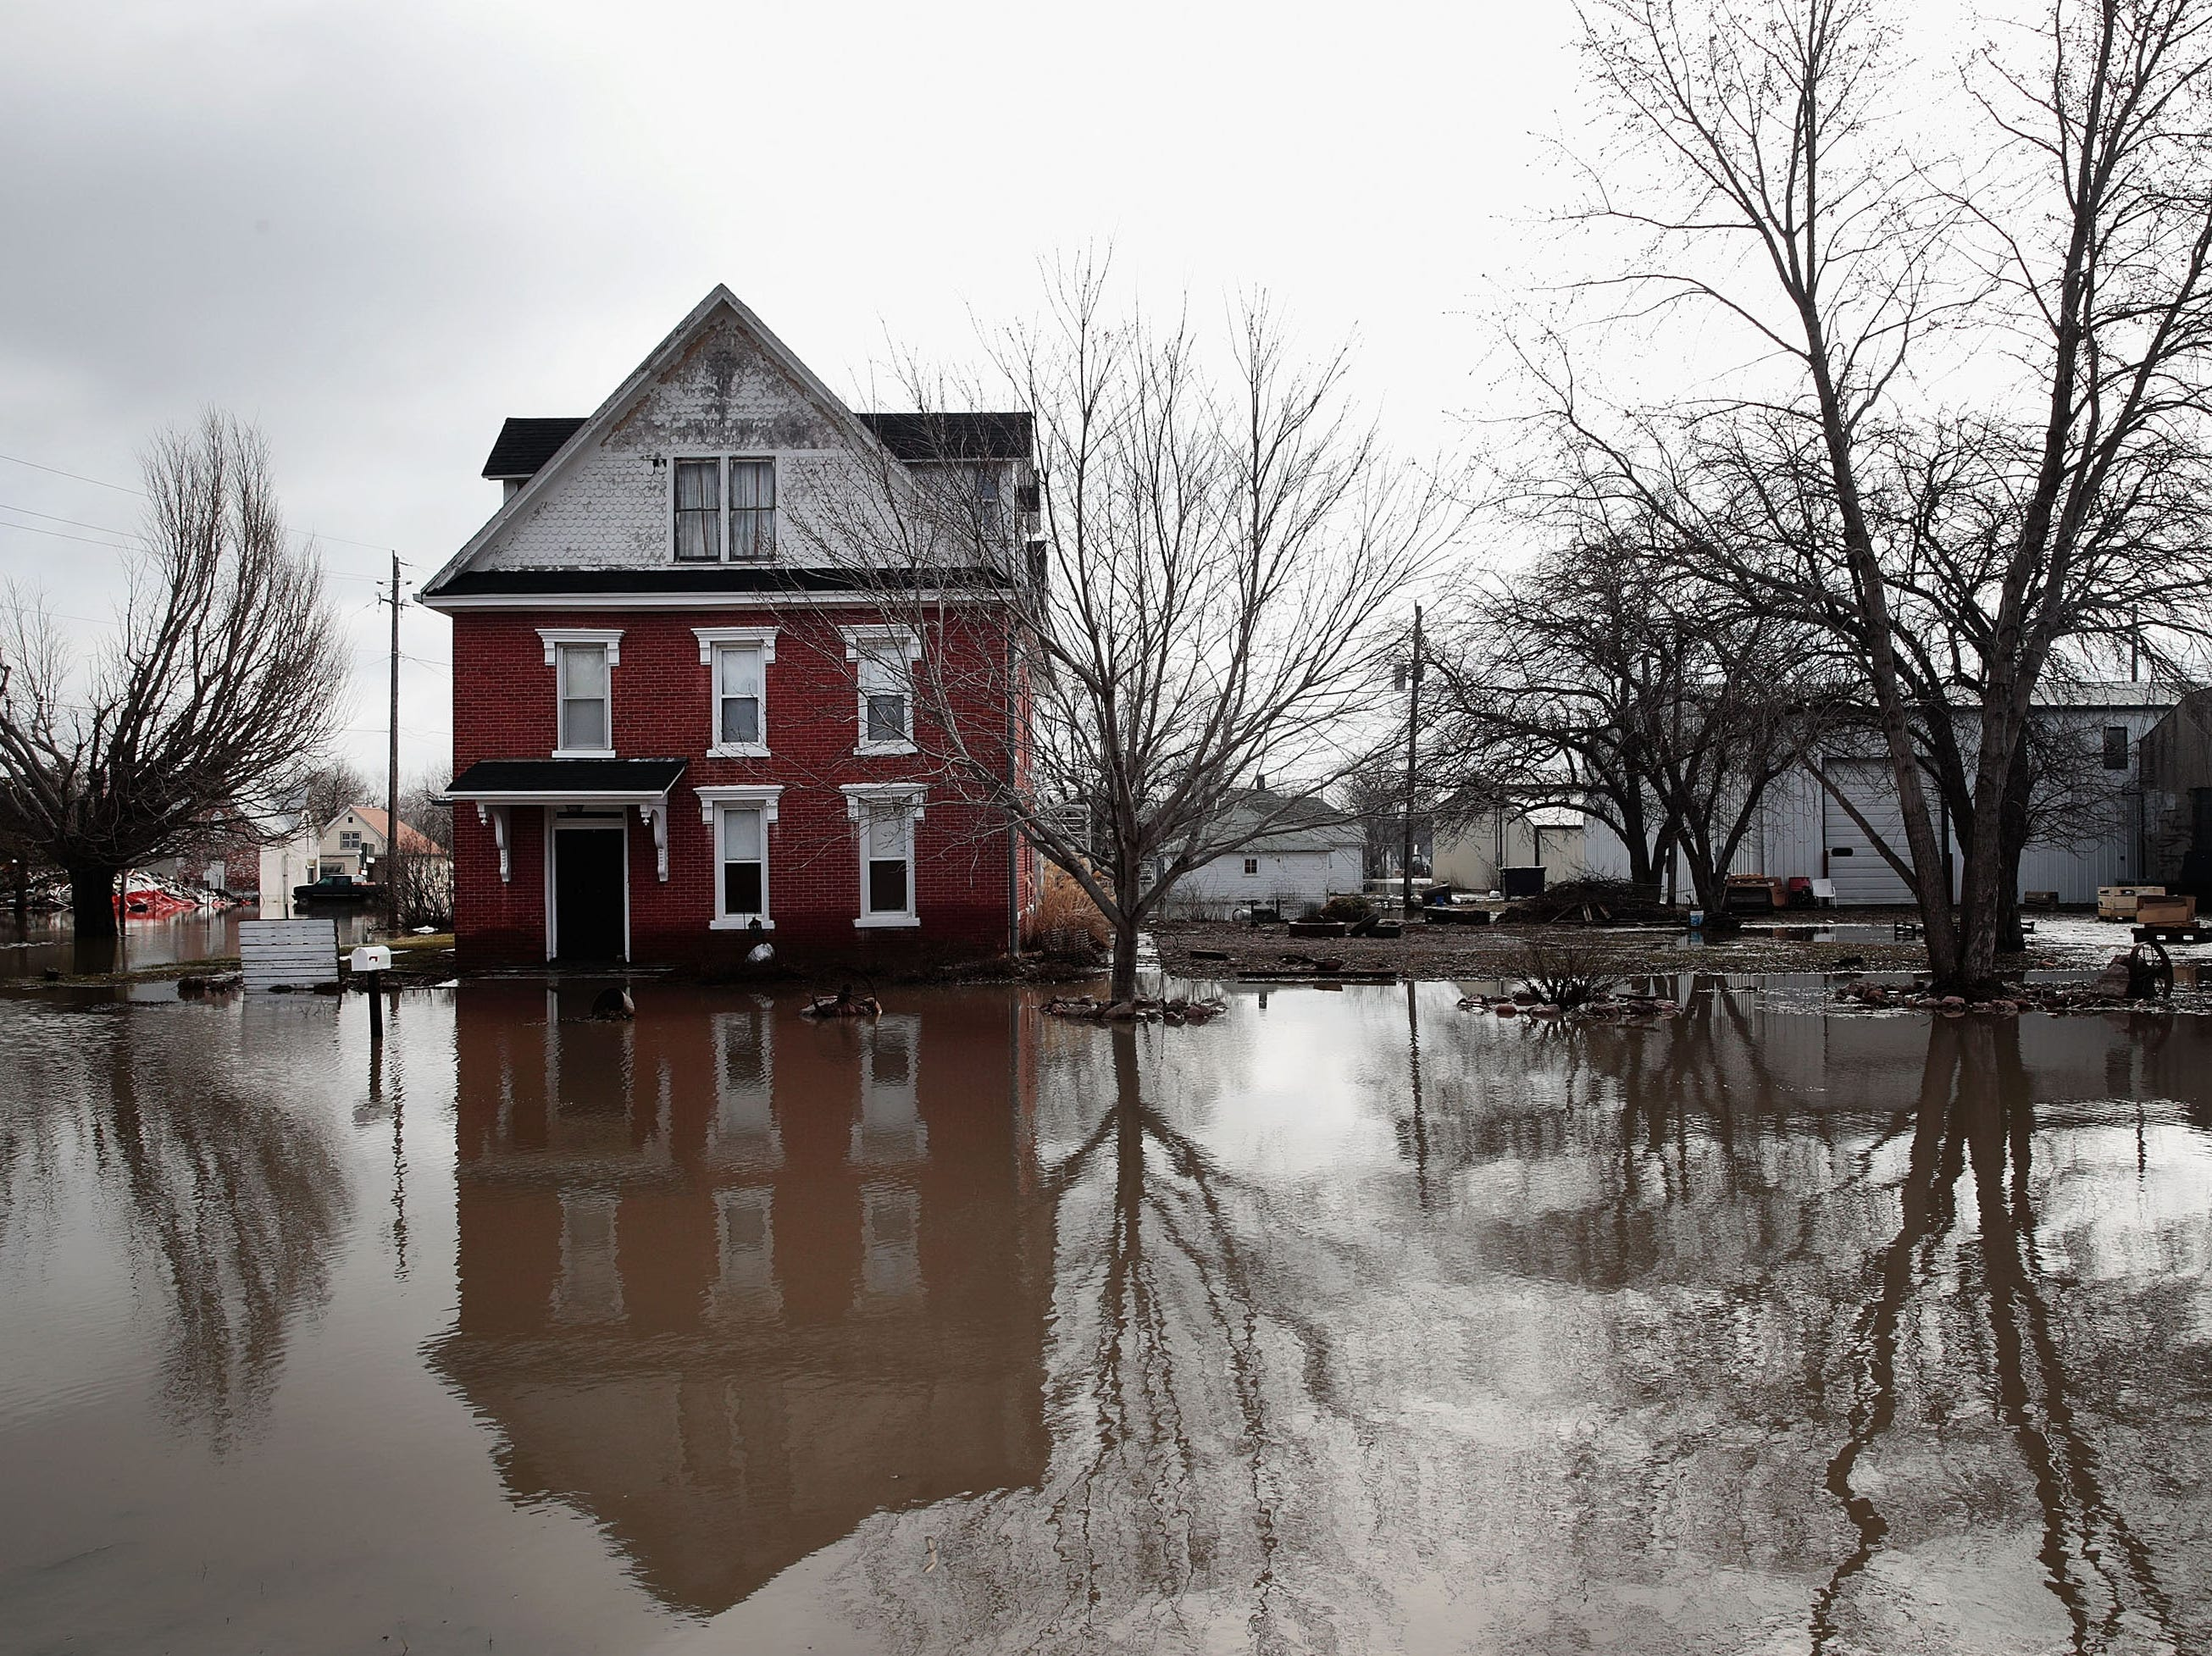 A home sits in flood water on March 20, 2019 in Hamburg, Iowa. Although flood water in the town has started to recede many homes and businesses remain surrounded by water.